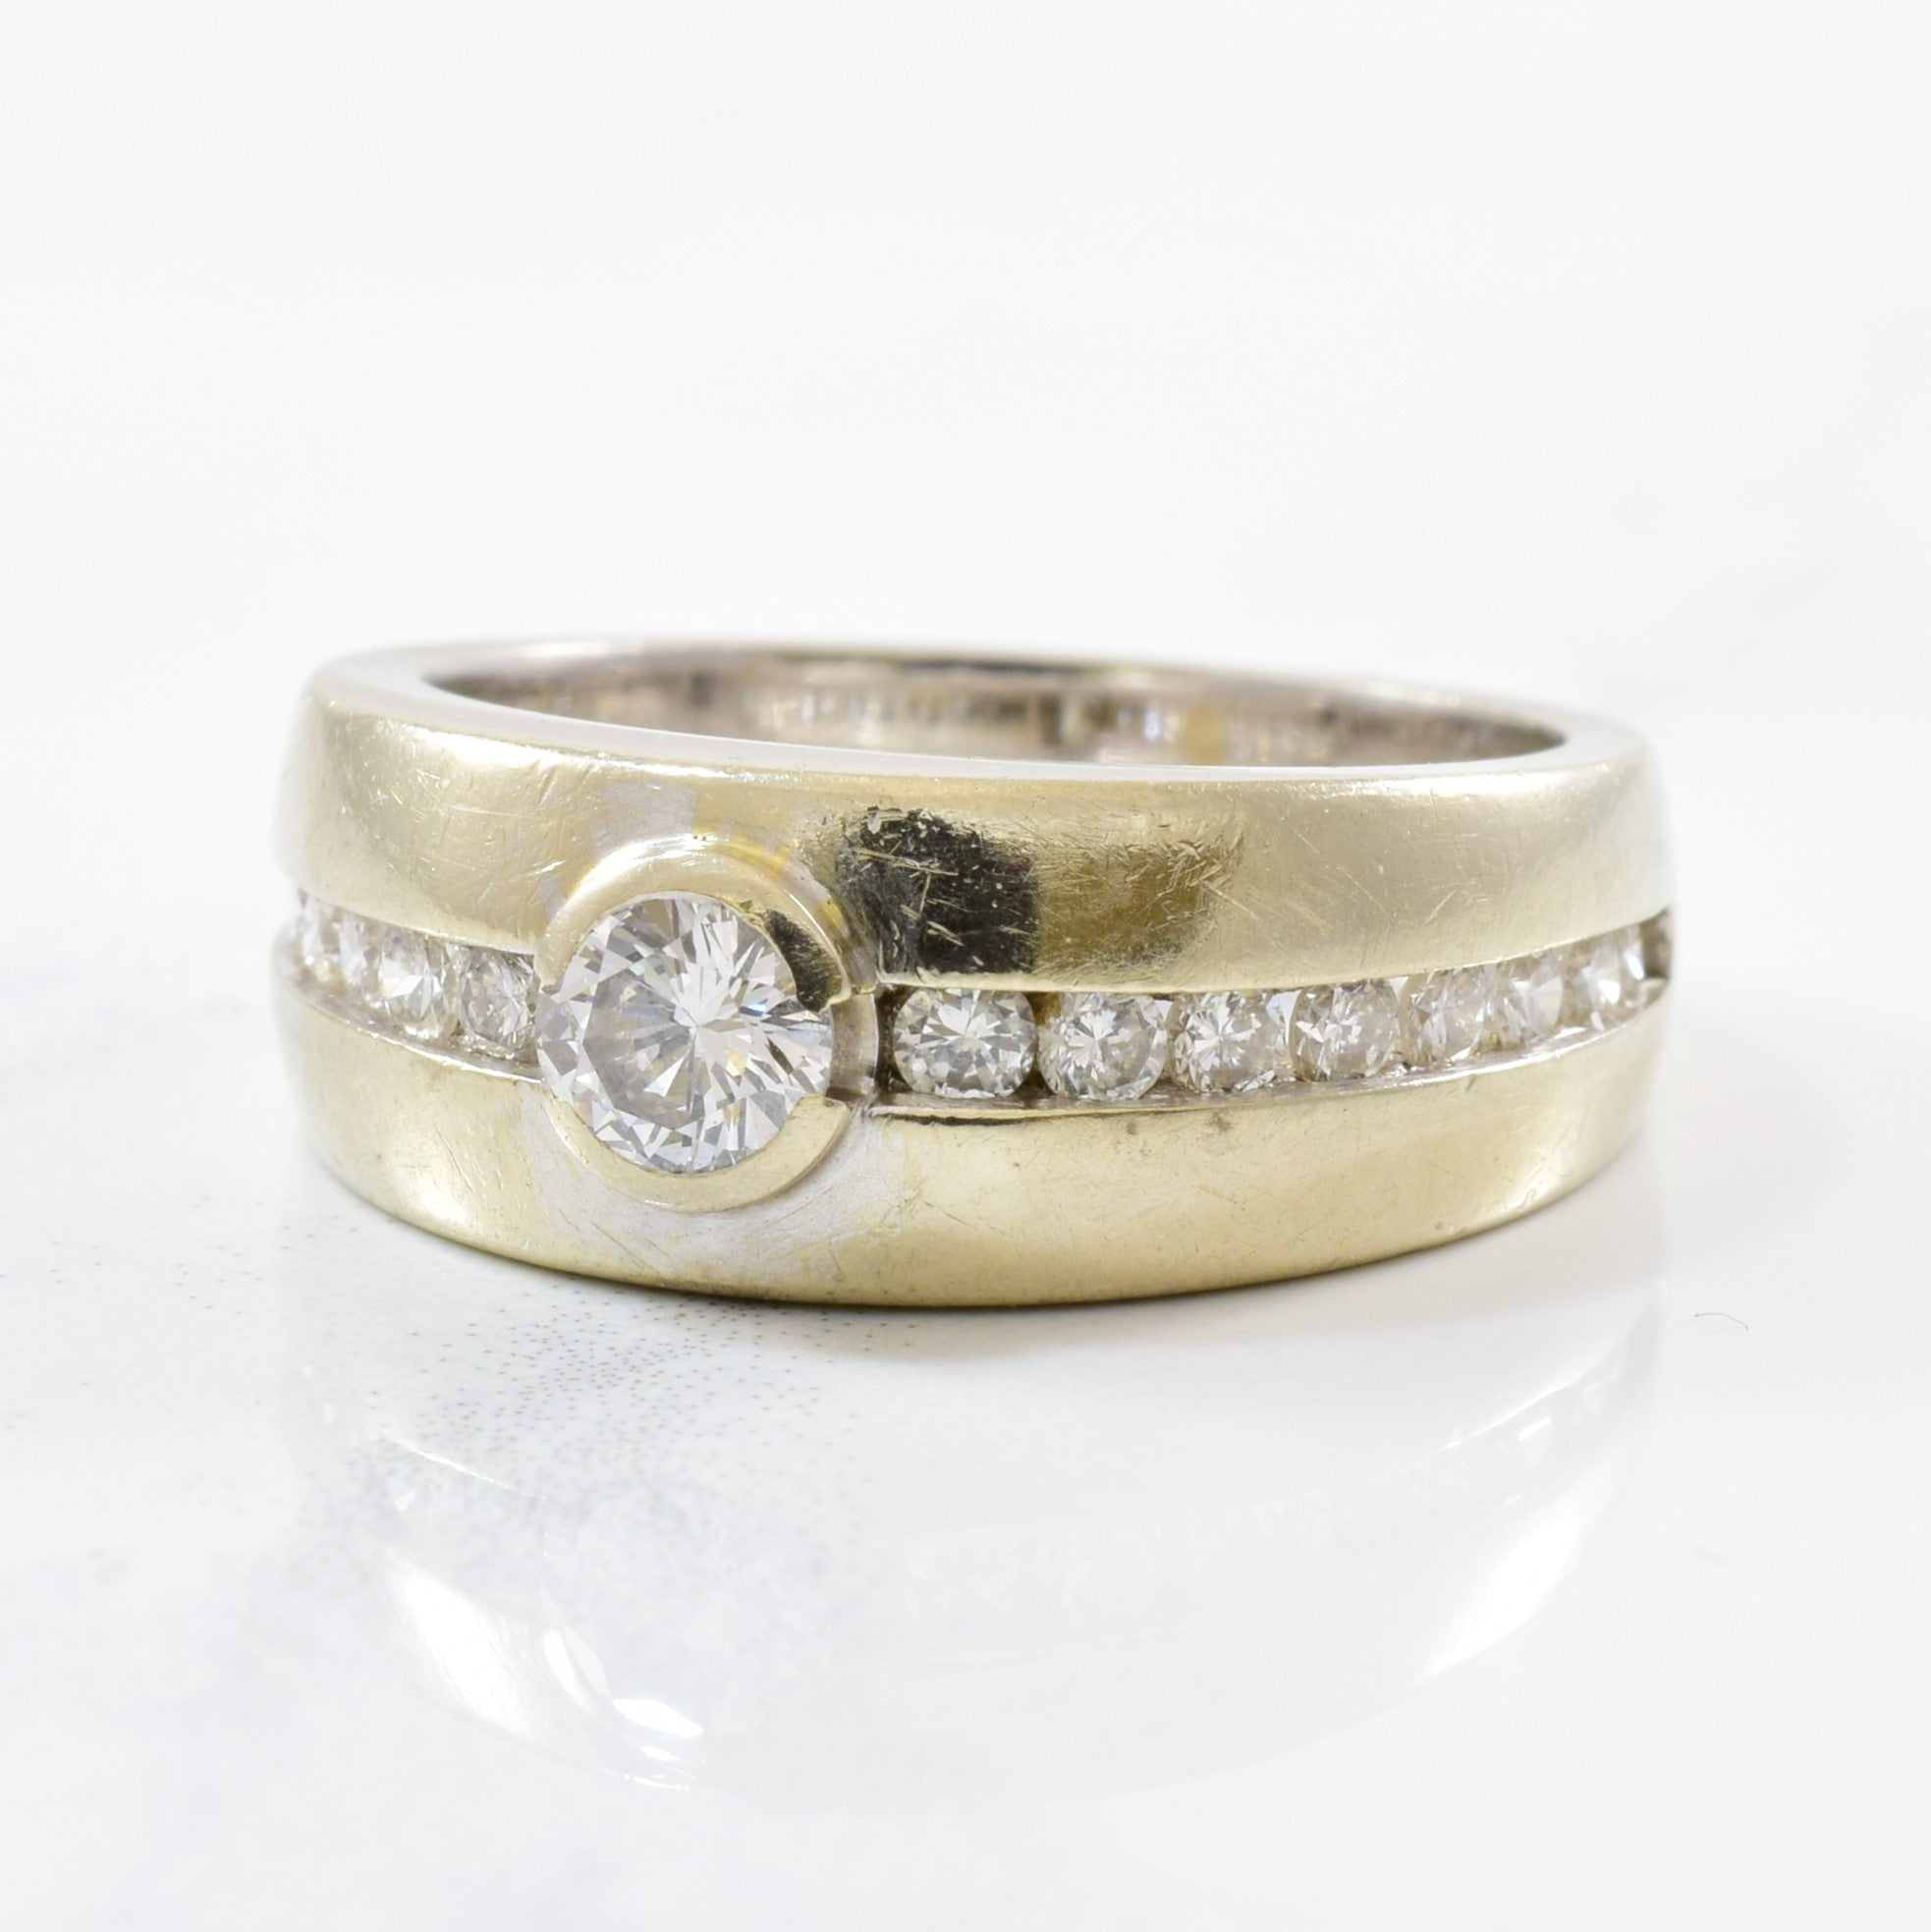 Semi Bezel Set Diamond Engagement Ring | 0.53ctw | SZ 6.5 |